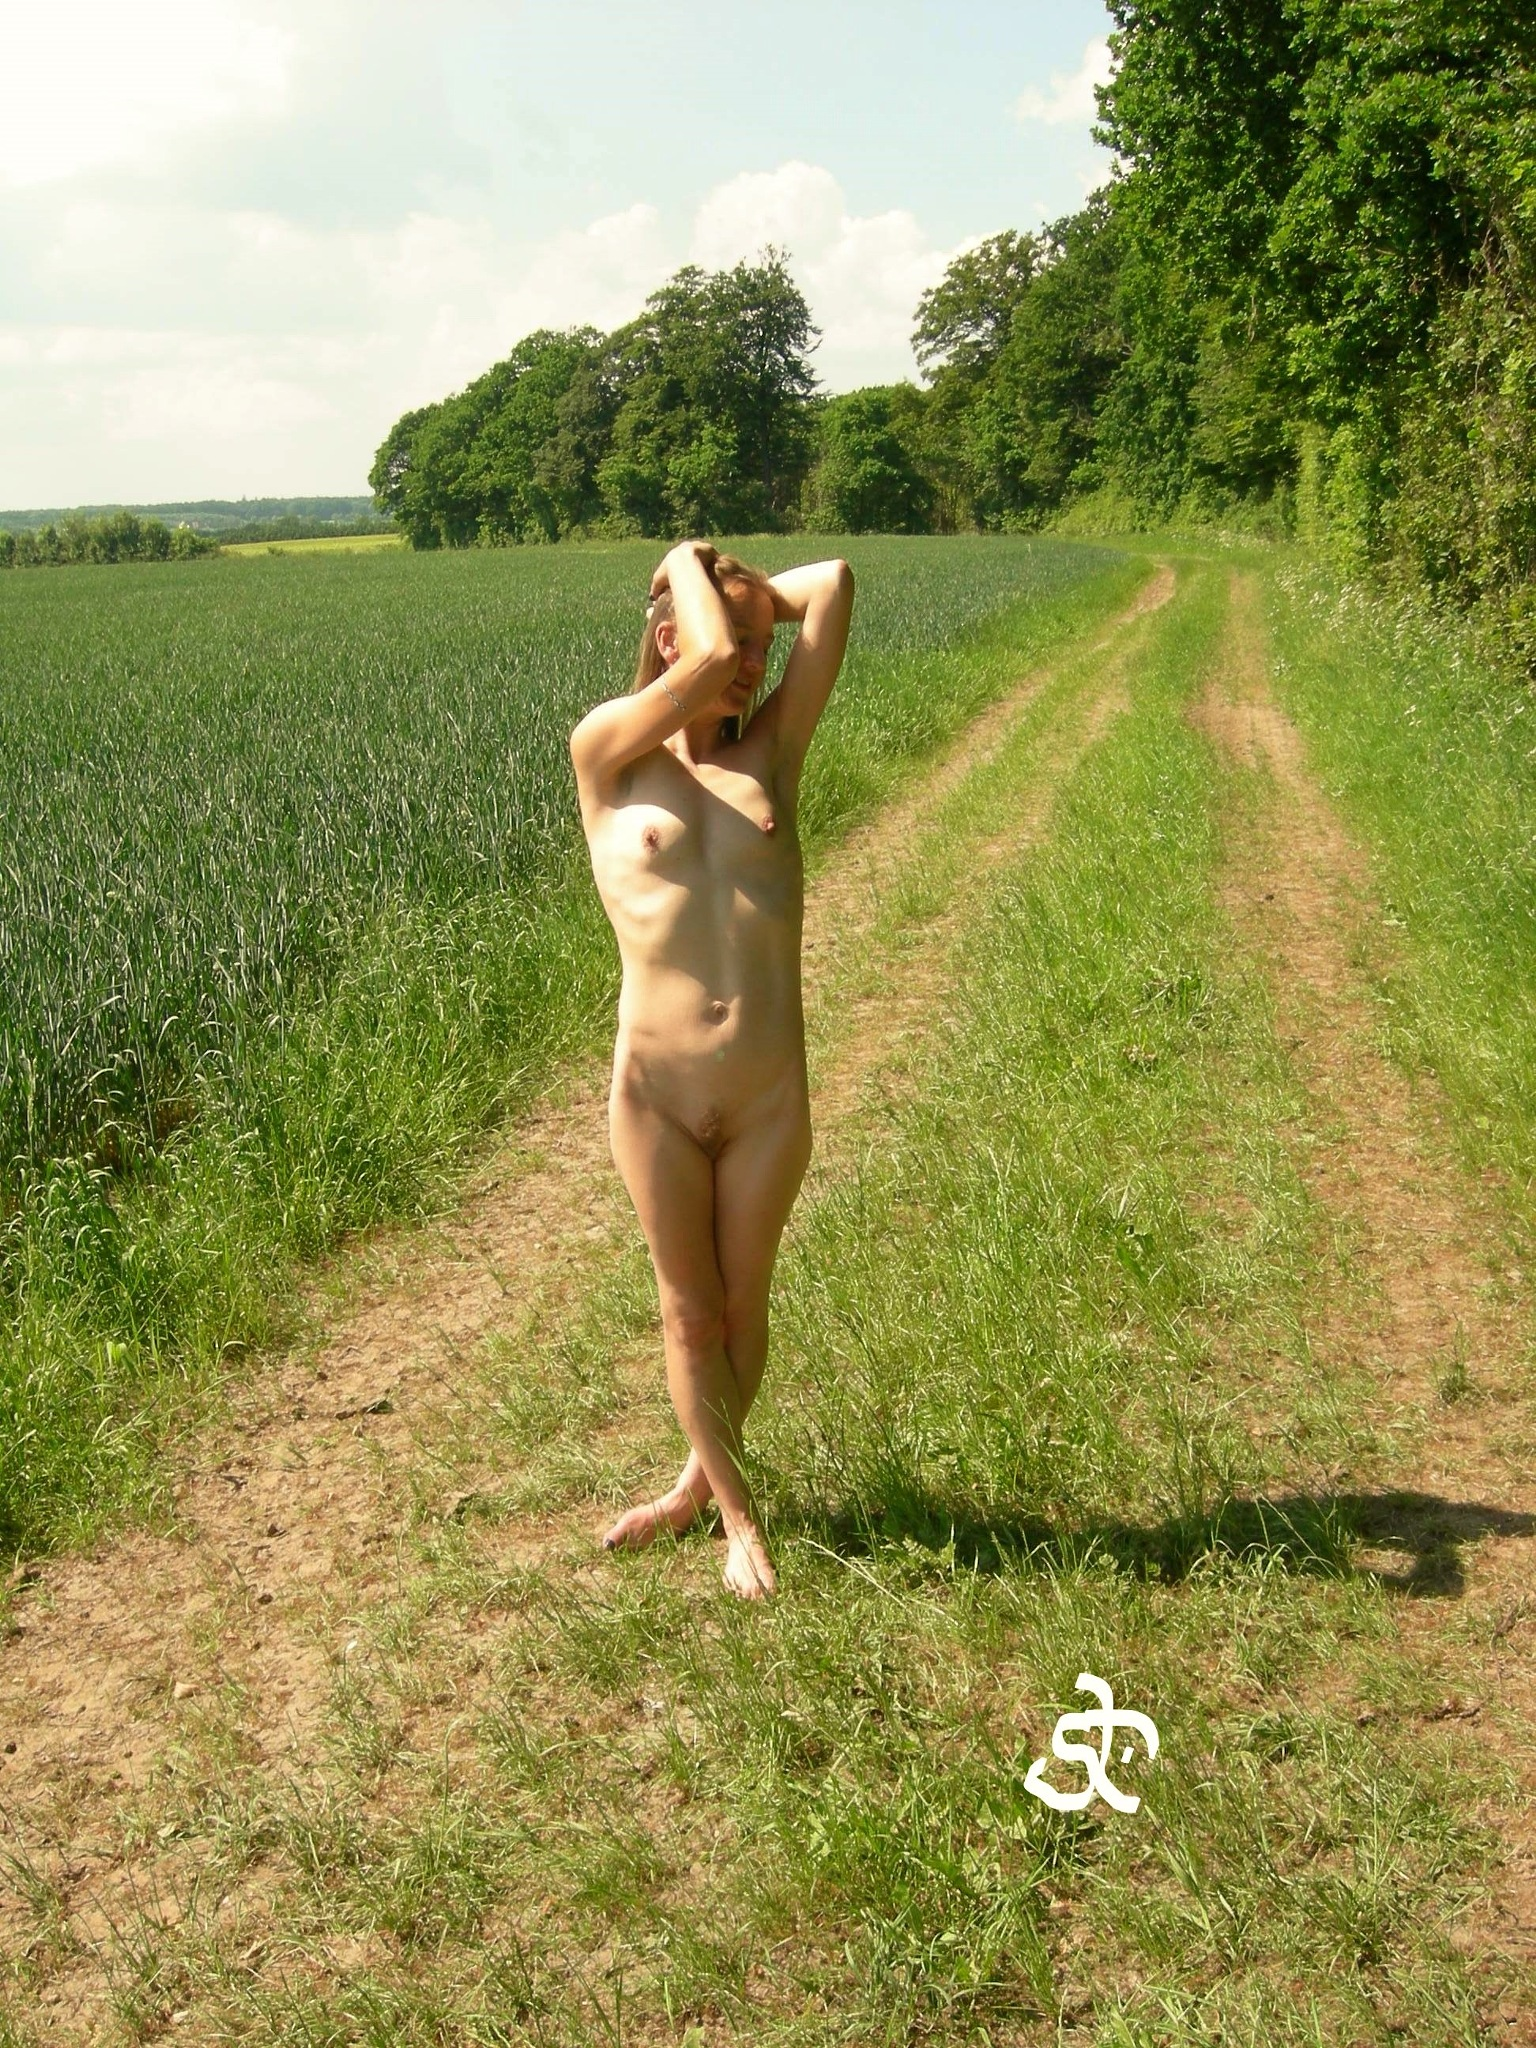 POSING ON THE FIELD ROAD. (0) by Joergen Hansen